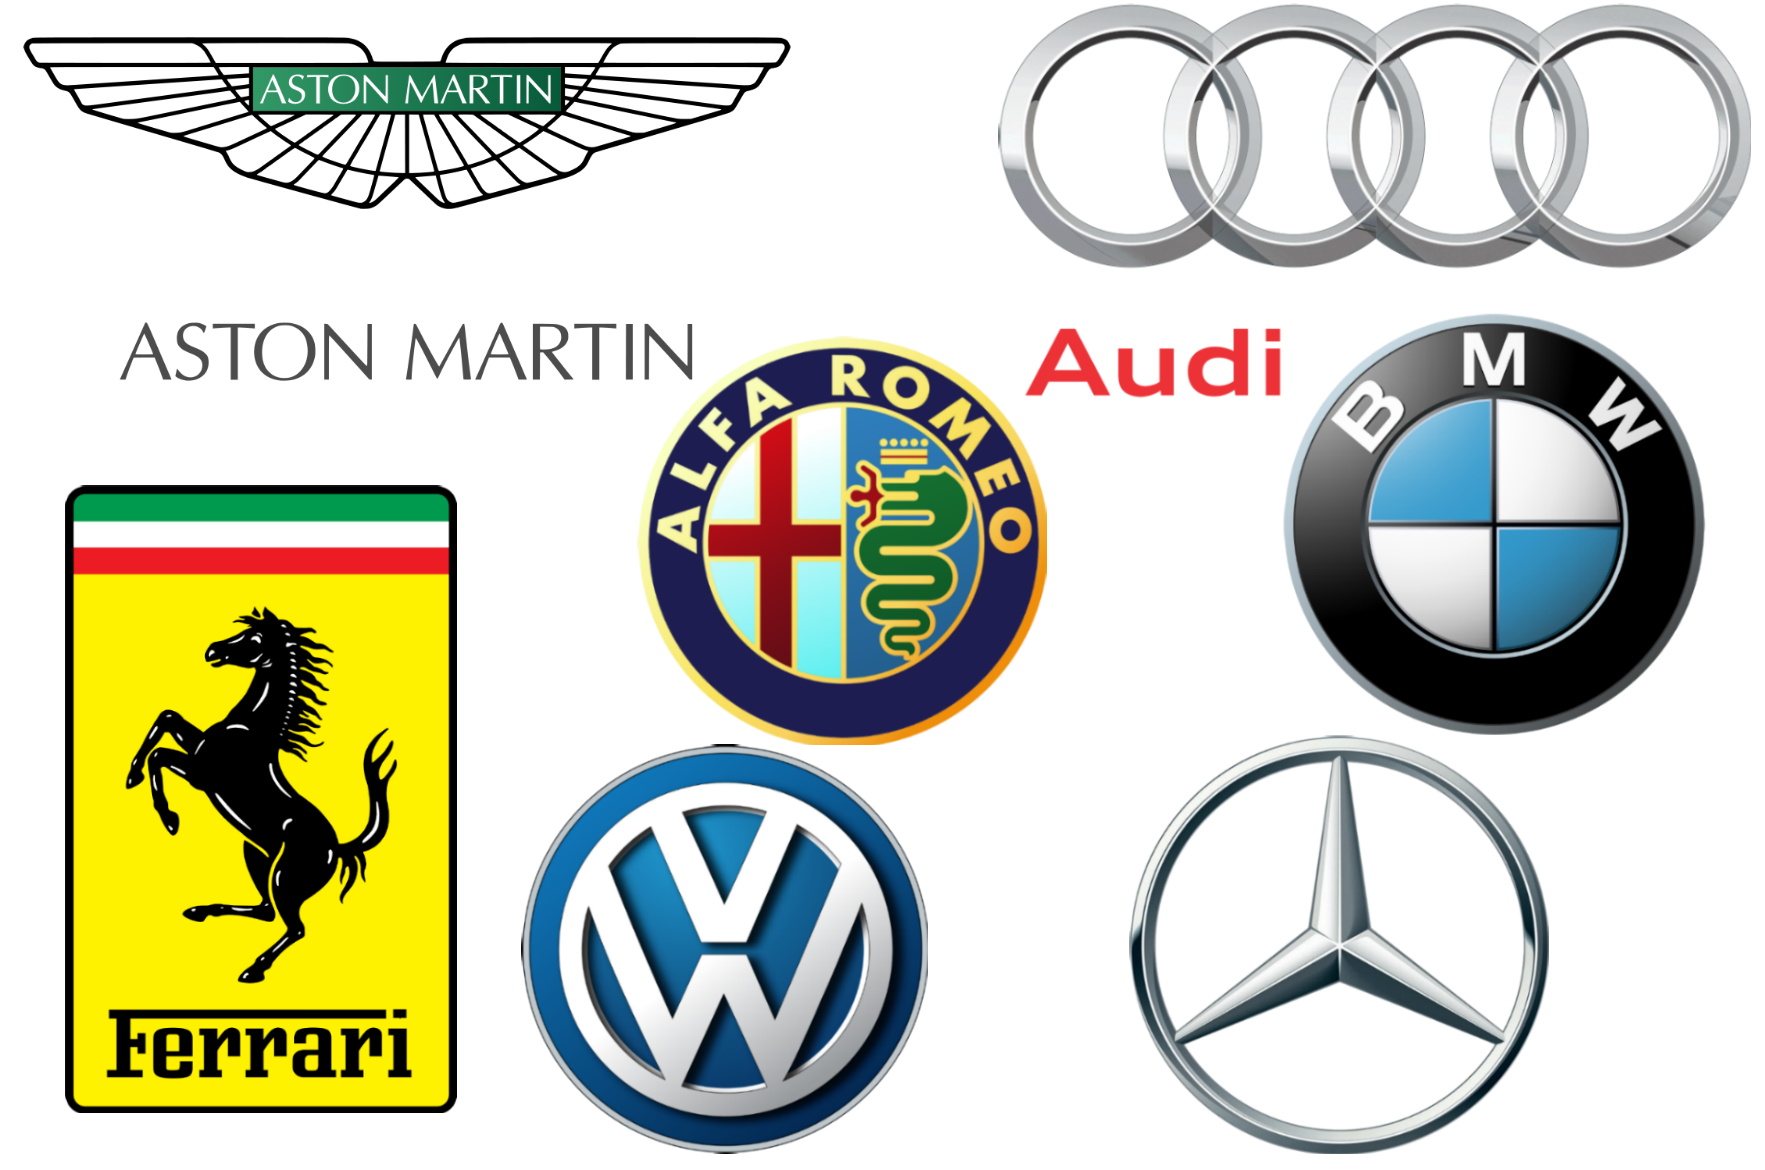 European Car Brands on sports car badges